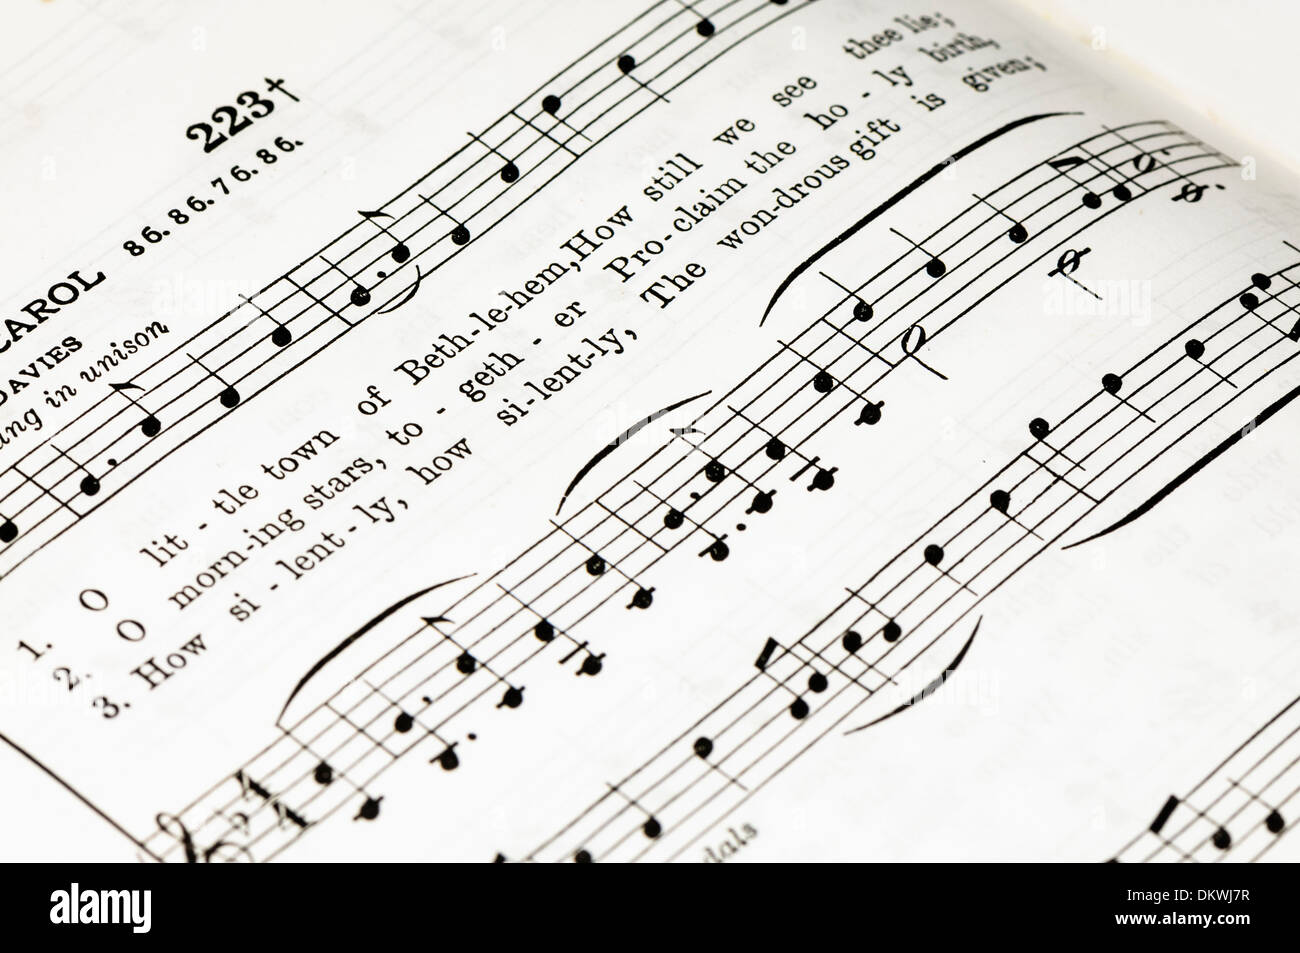 Lyrics Score Stock Photos & Lyrics Score Stock Images - Alamy